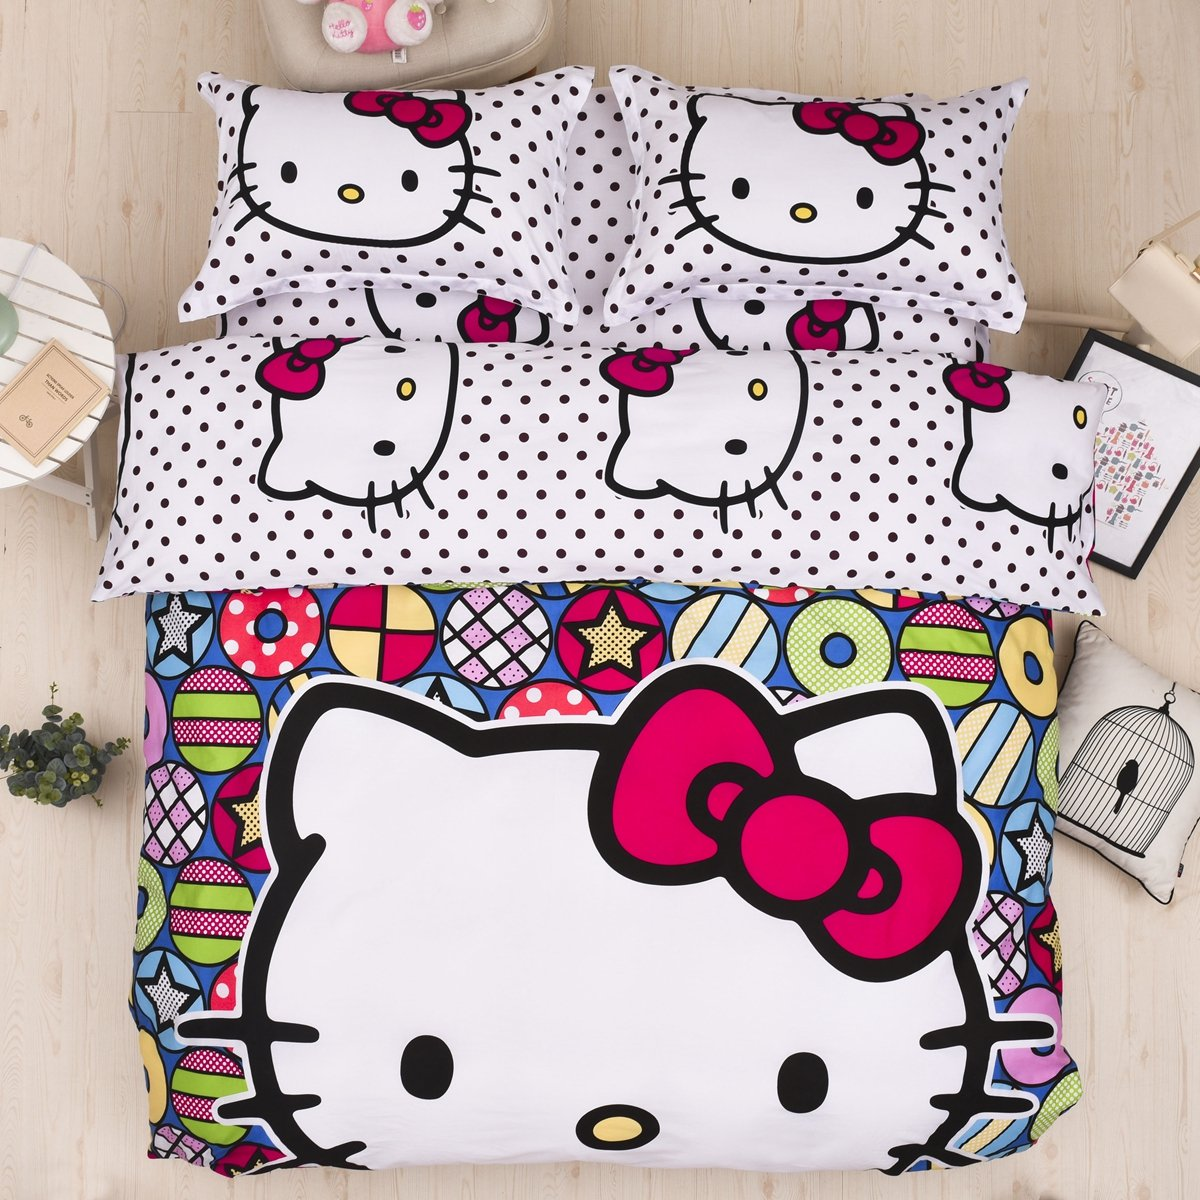 CASA 100% Cotton Kids Bedding Set Girls Hello Kitty Duvet cover and Pillow cases and Flat sheet,4 Pieces,King